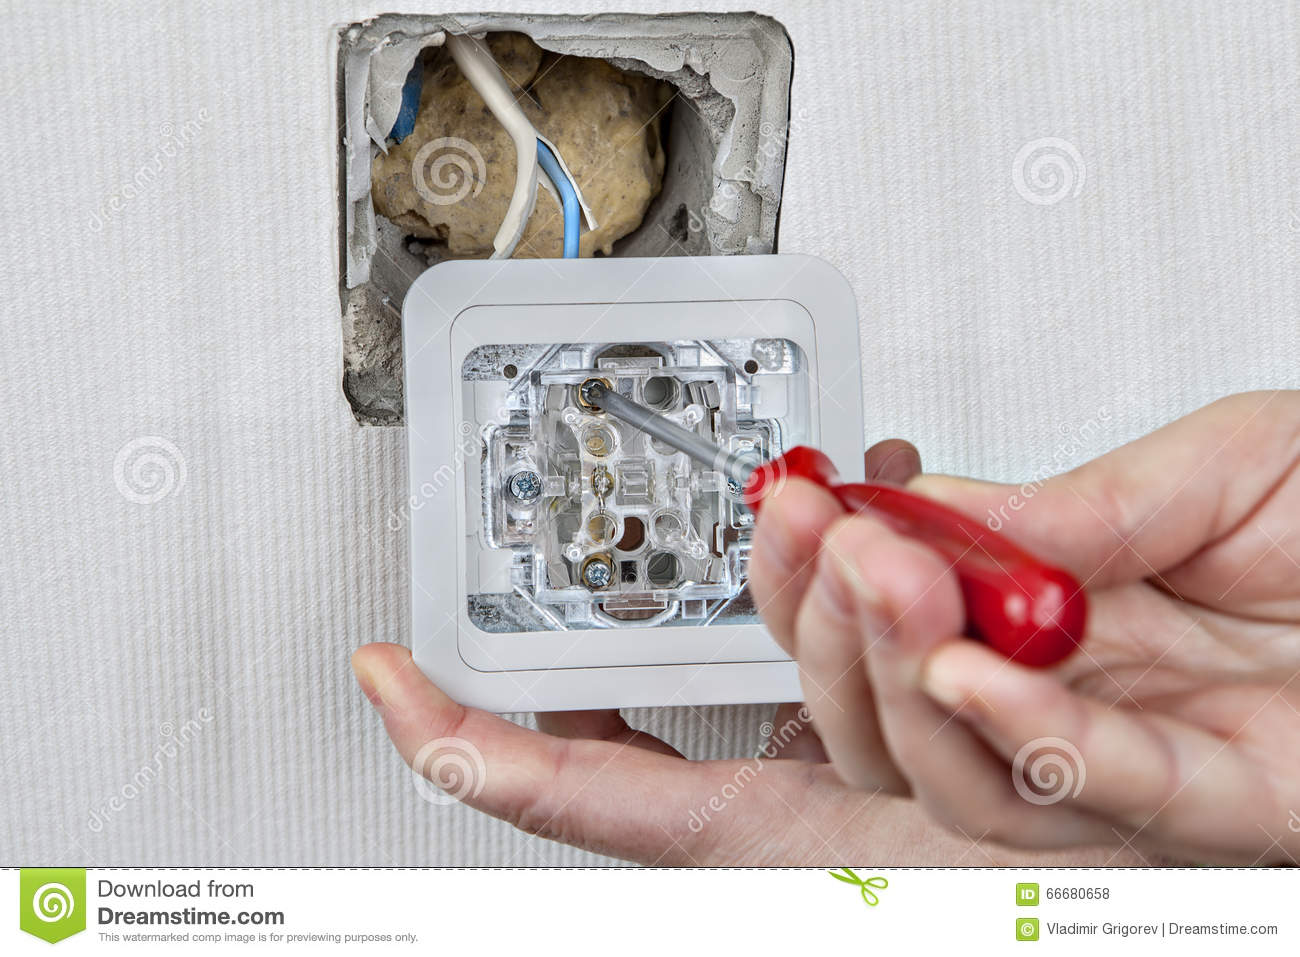 hight resolution of replacing electric wall light switch connection to the electrical wiring tightening the using a screwdriver